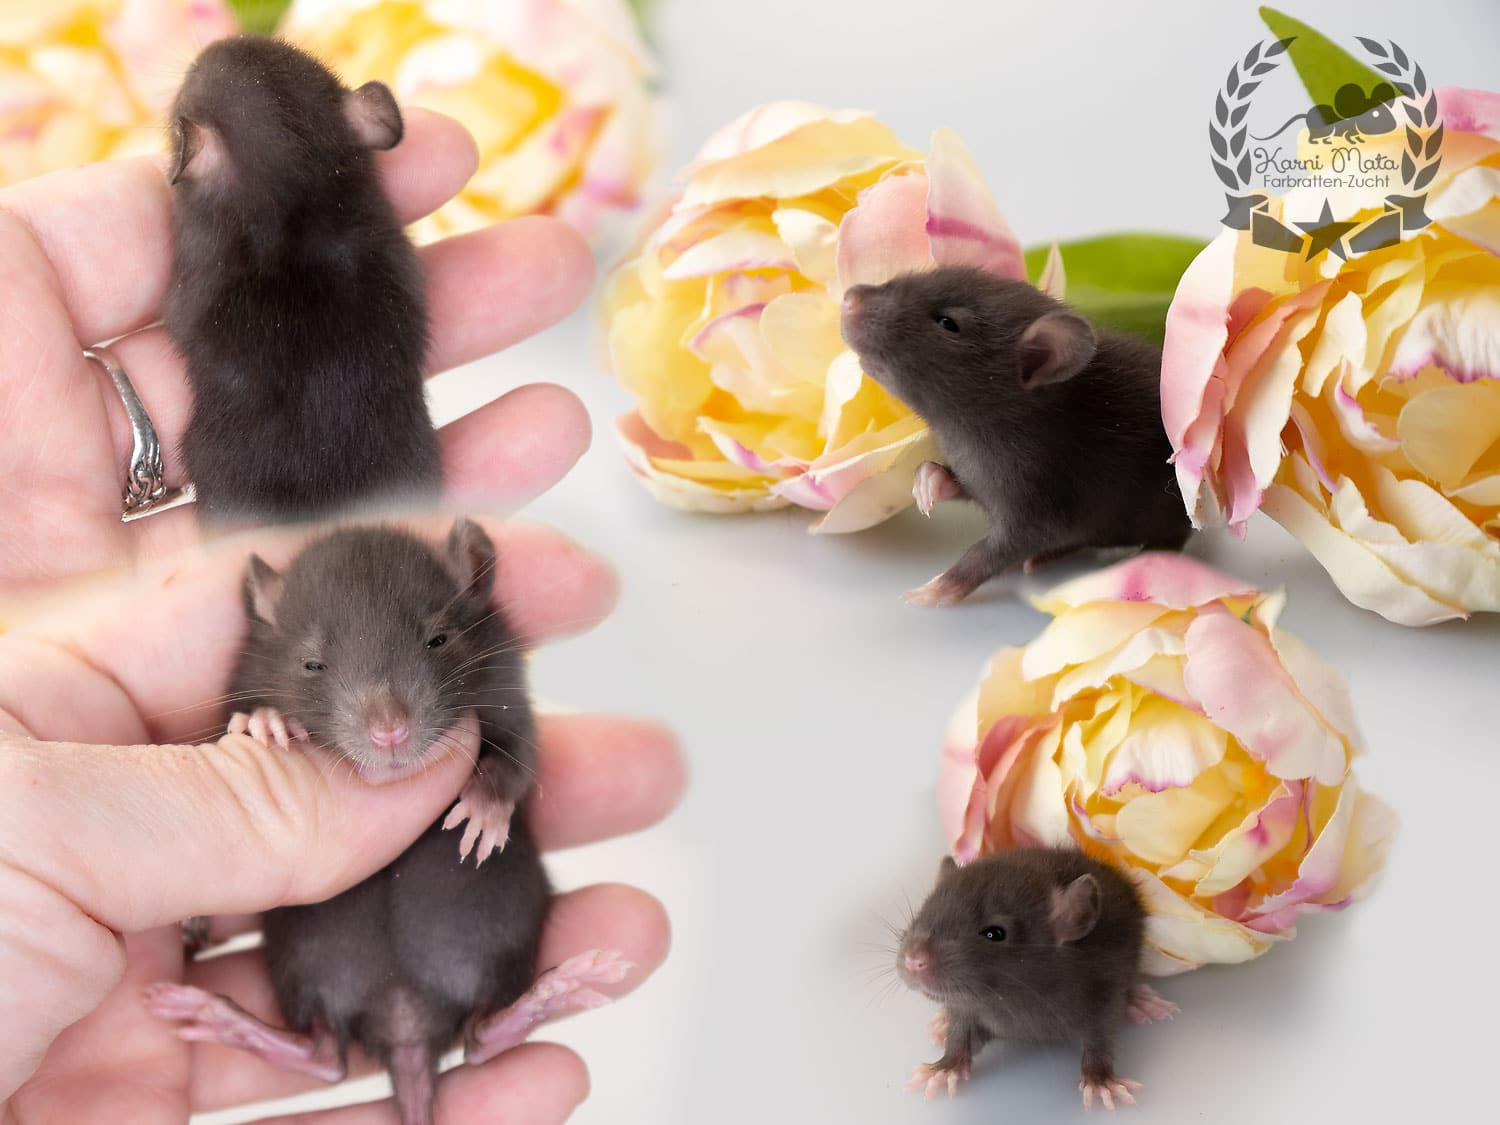 Cessair (w./f.), Farbratte / Fancyrat, Chocolate Self